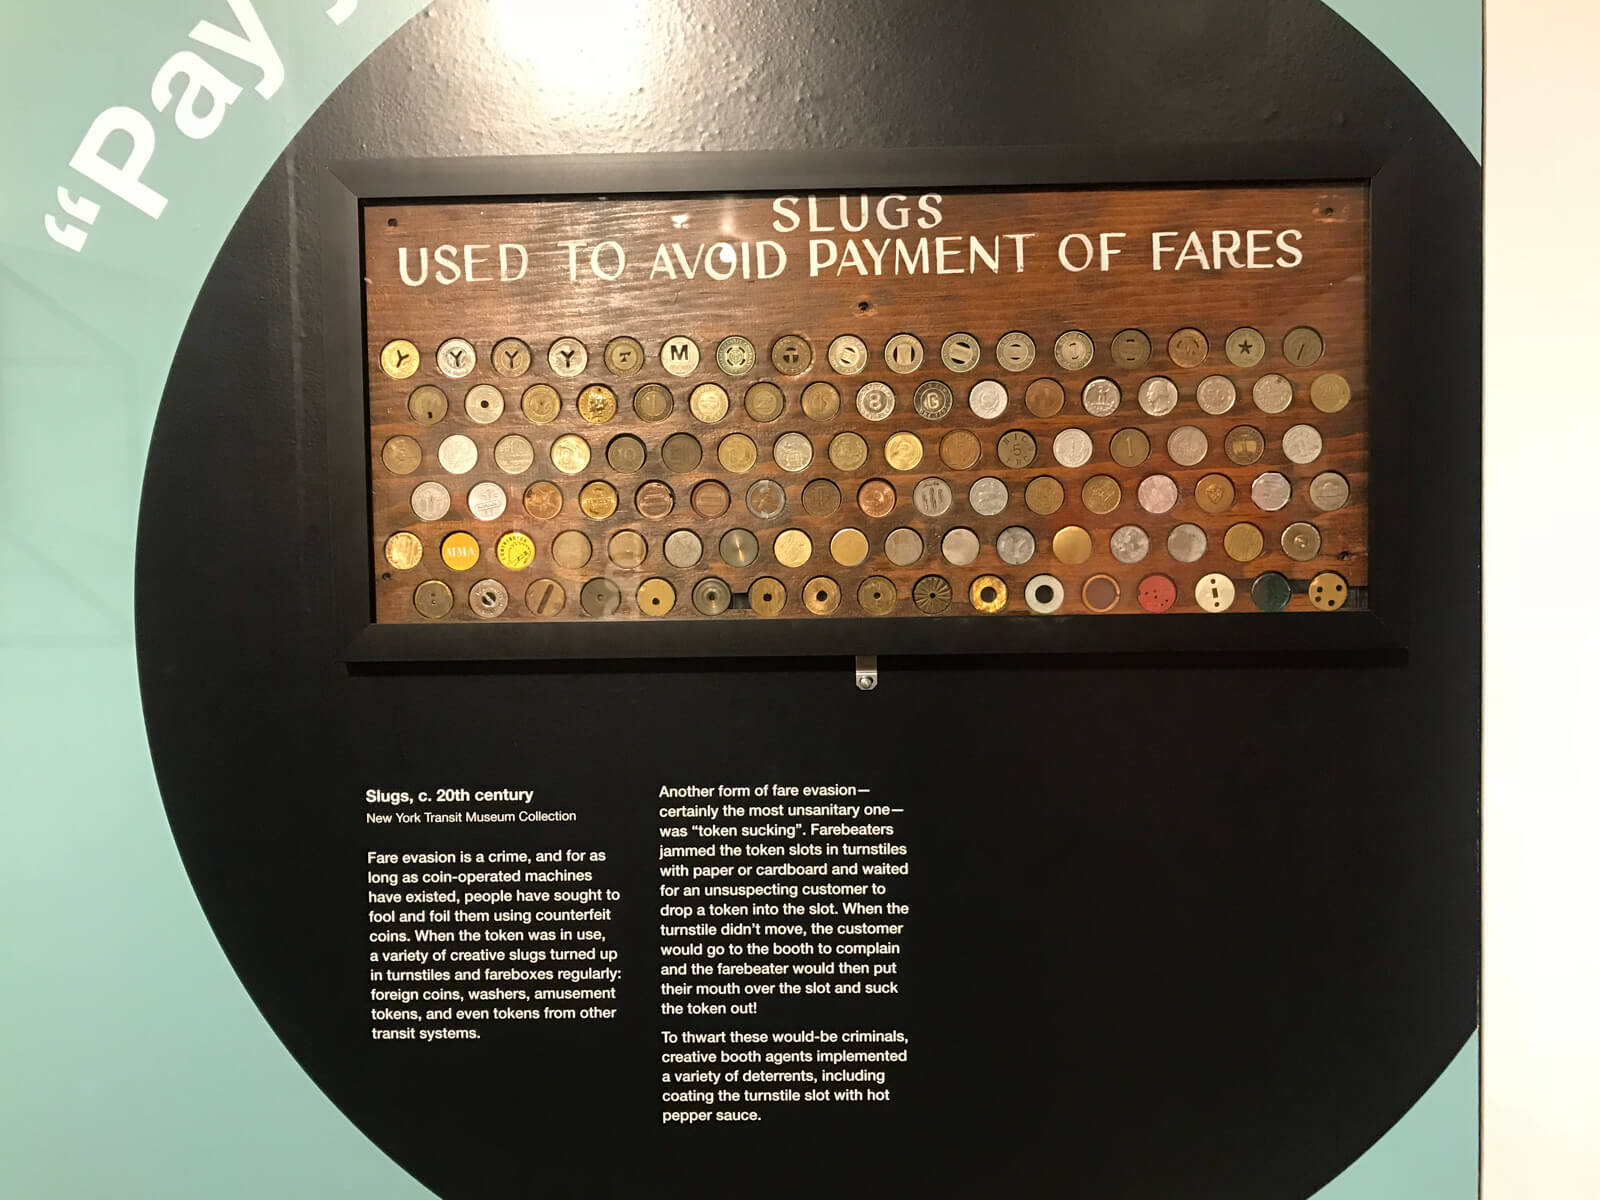 A display on a wall of many different fake tokens, resembling metal coins, used to avoid paying fares to ride the train